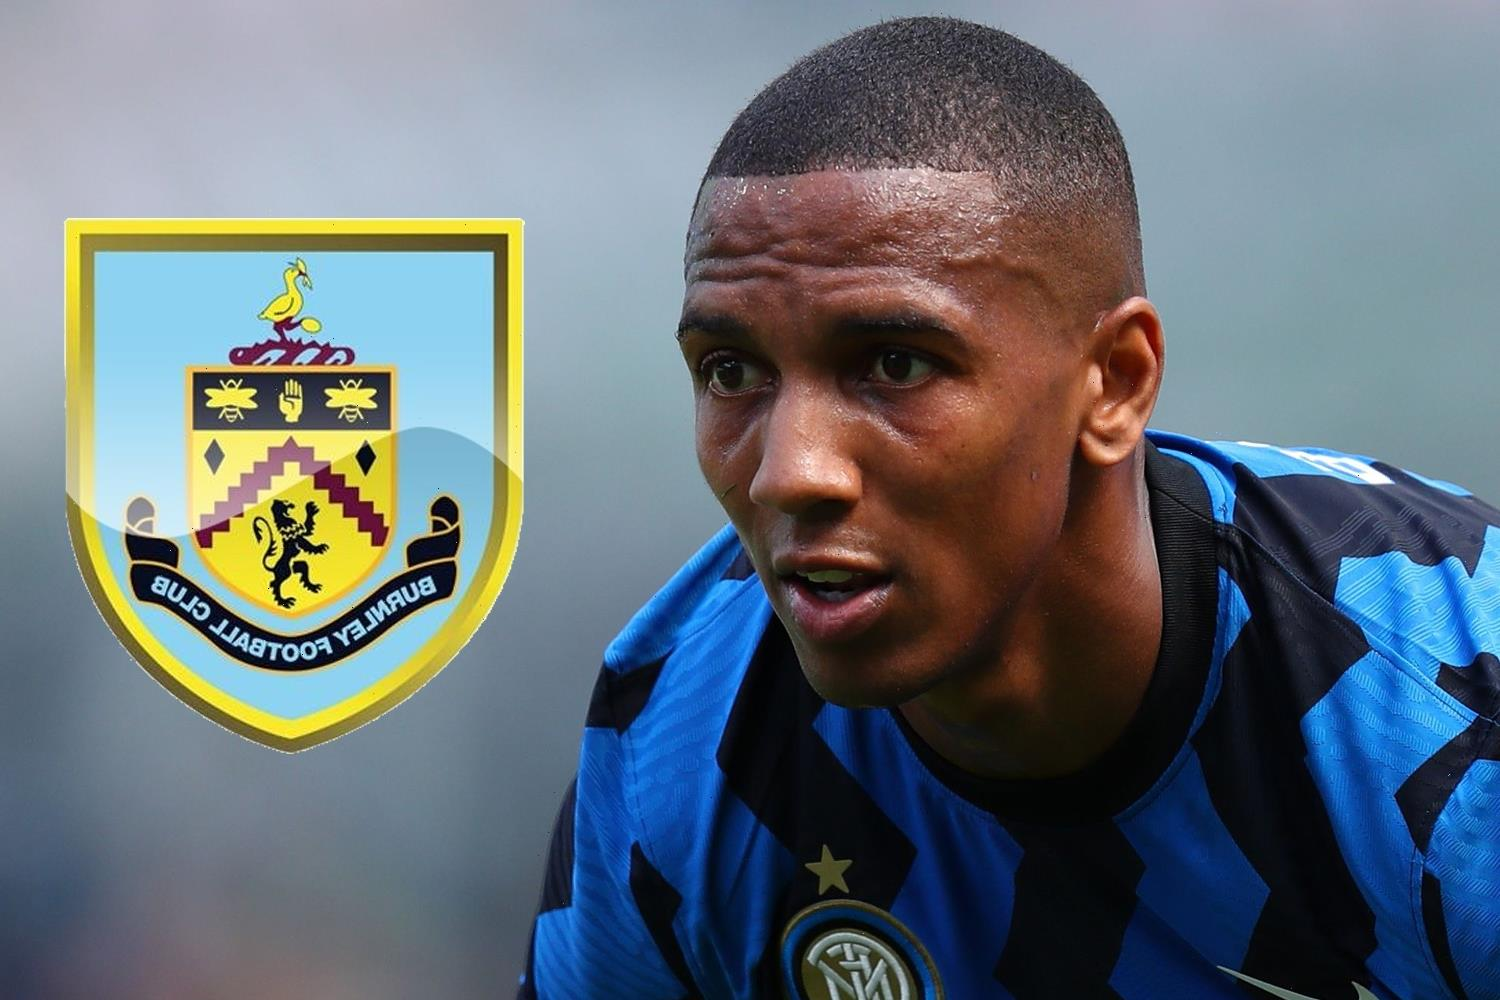 Ashley Young set for shock Burnley transfer as ex-Man Utd star closes in on Premier League return from Inter Milan